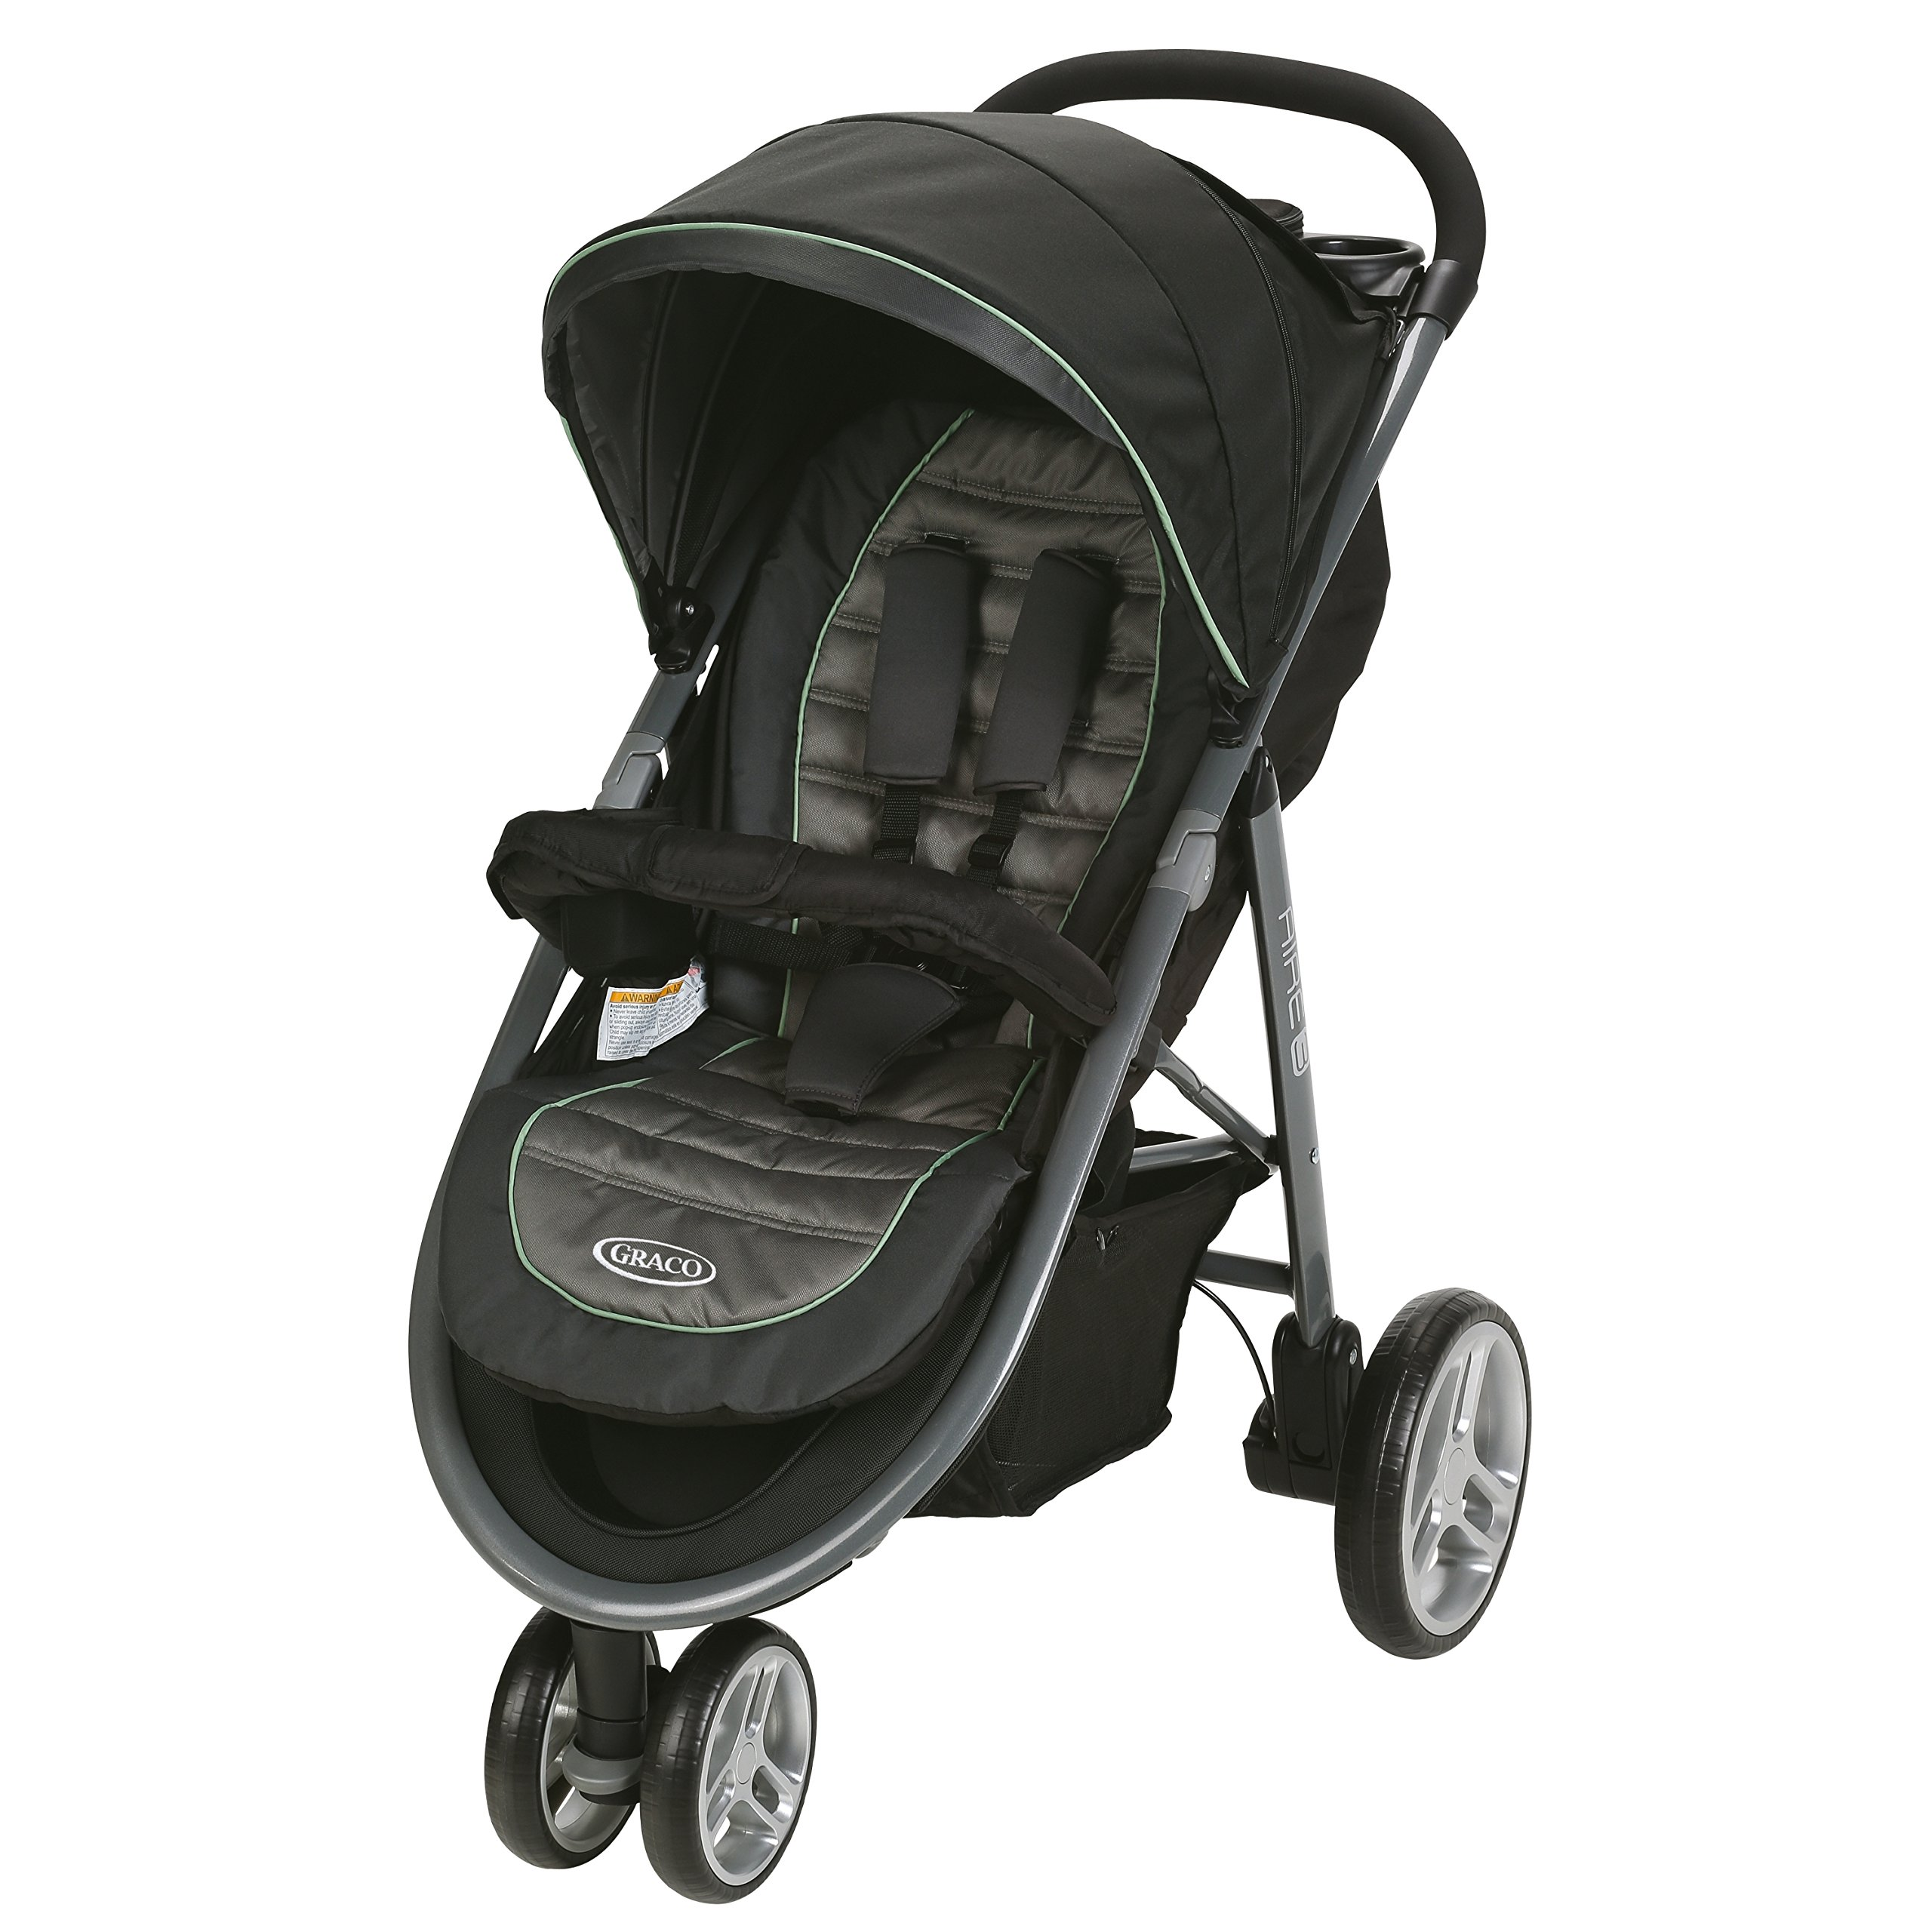 Graco Aire3 Stroller   Lightweight Baby Stroller, Ames by Graco